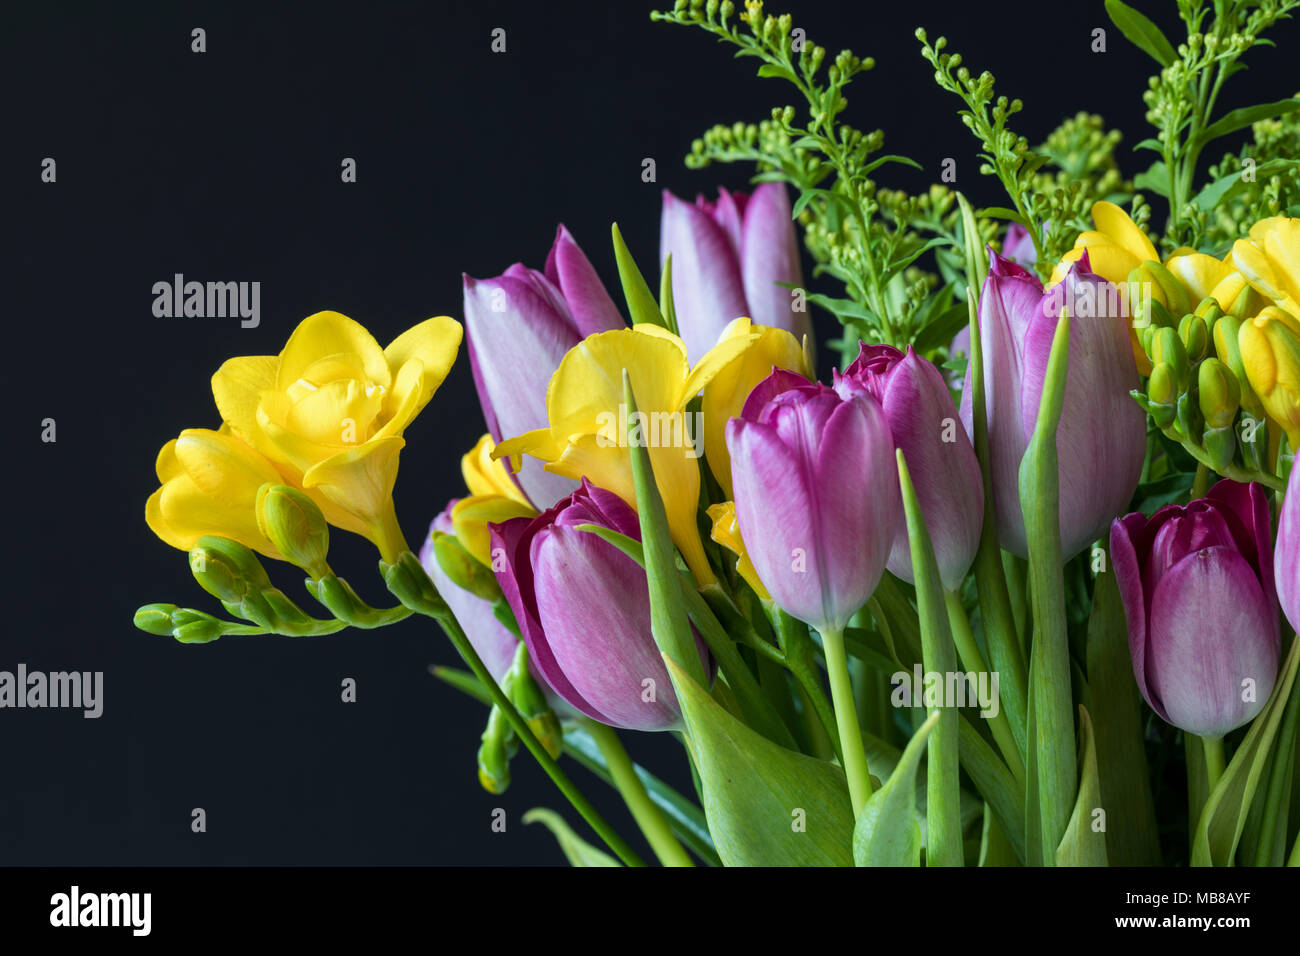 Close up of a spring bouquet of yellow freesias and pink tulips against a black background - Stock Image